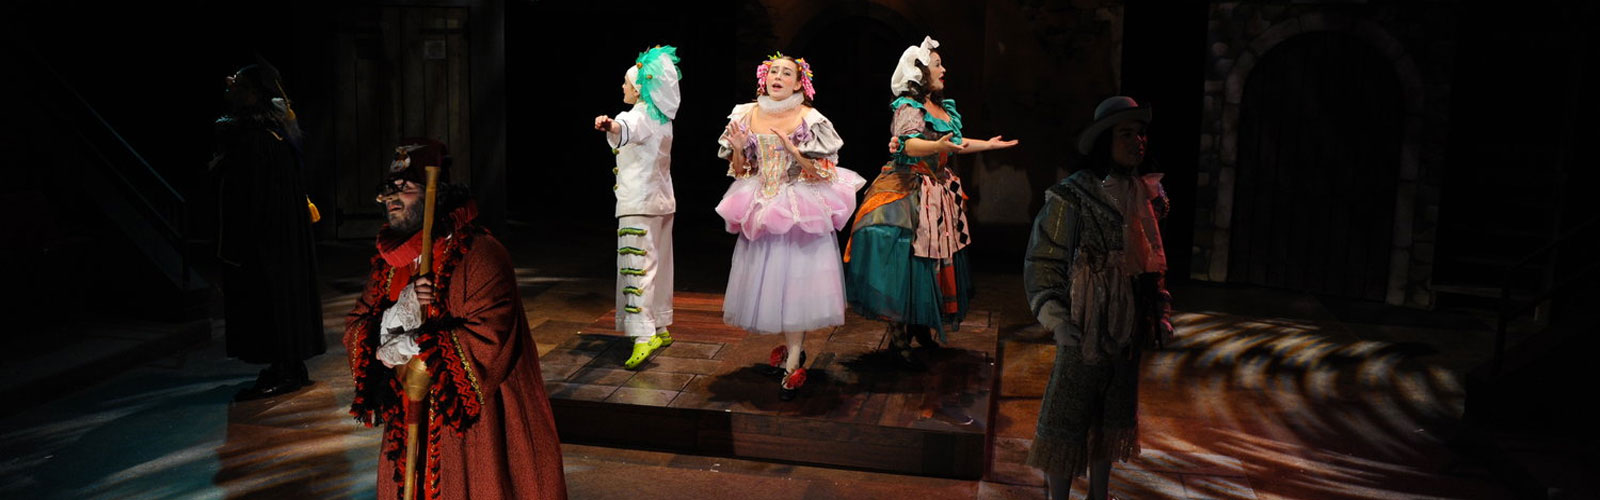 students in colorful costumes acting on a stage